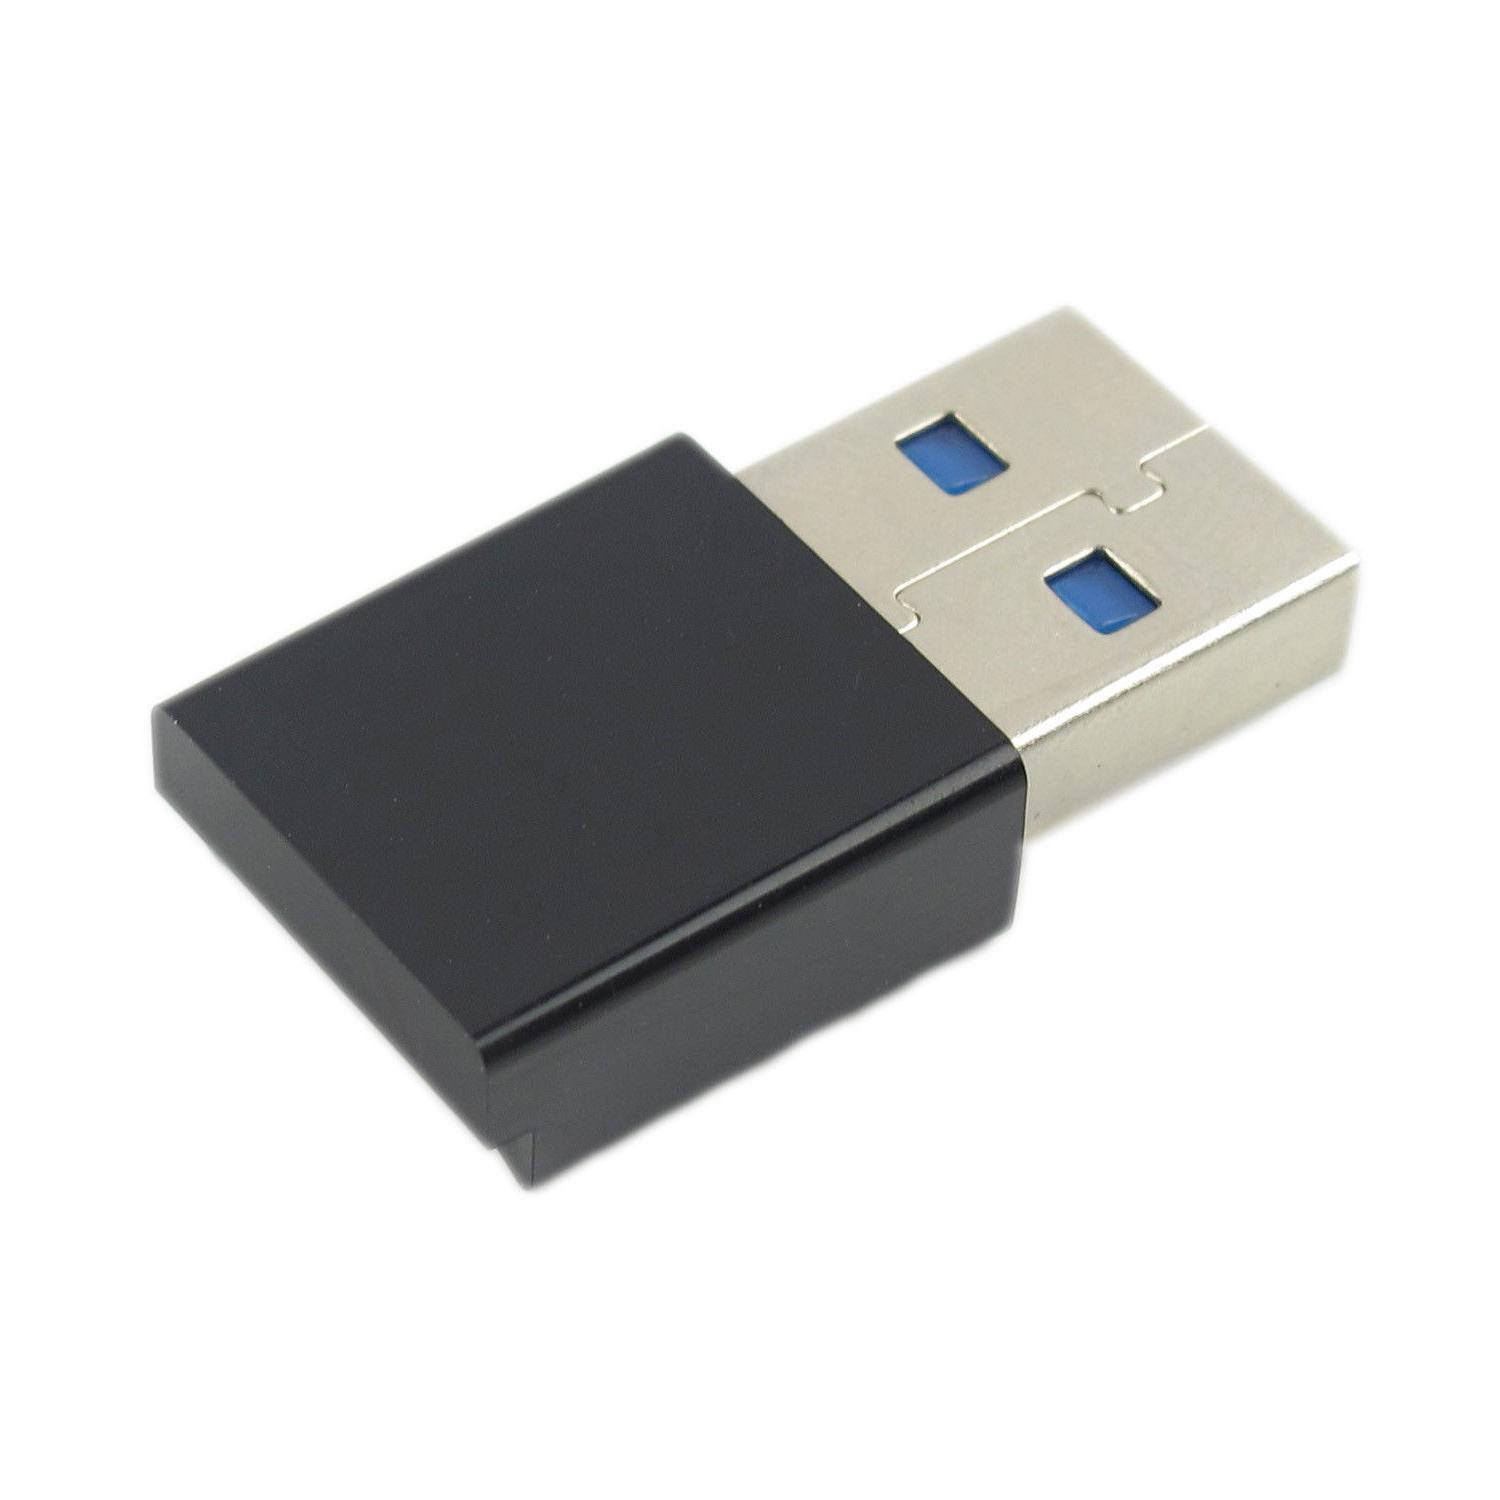 New! 5Gbps High Speed USB SD TF Card Adapter